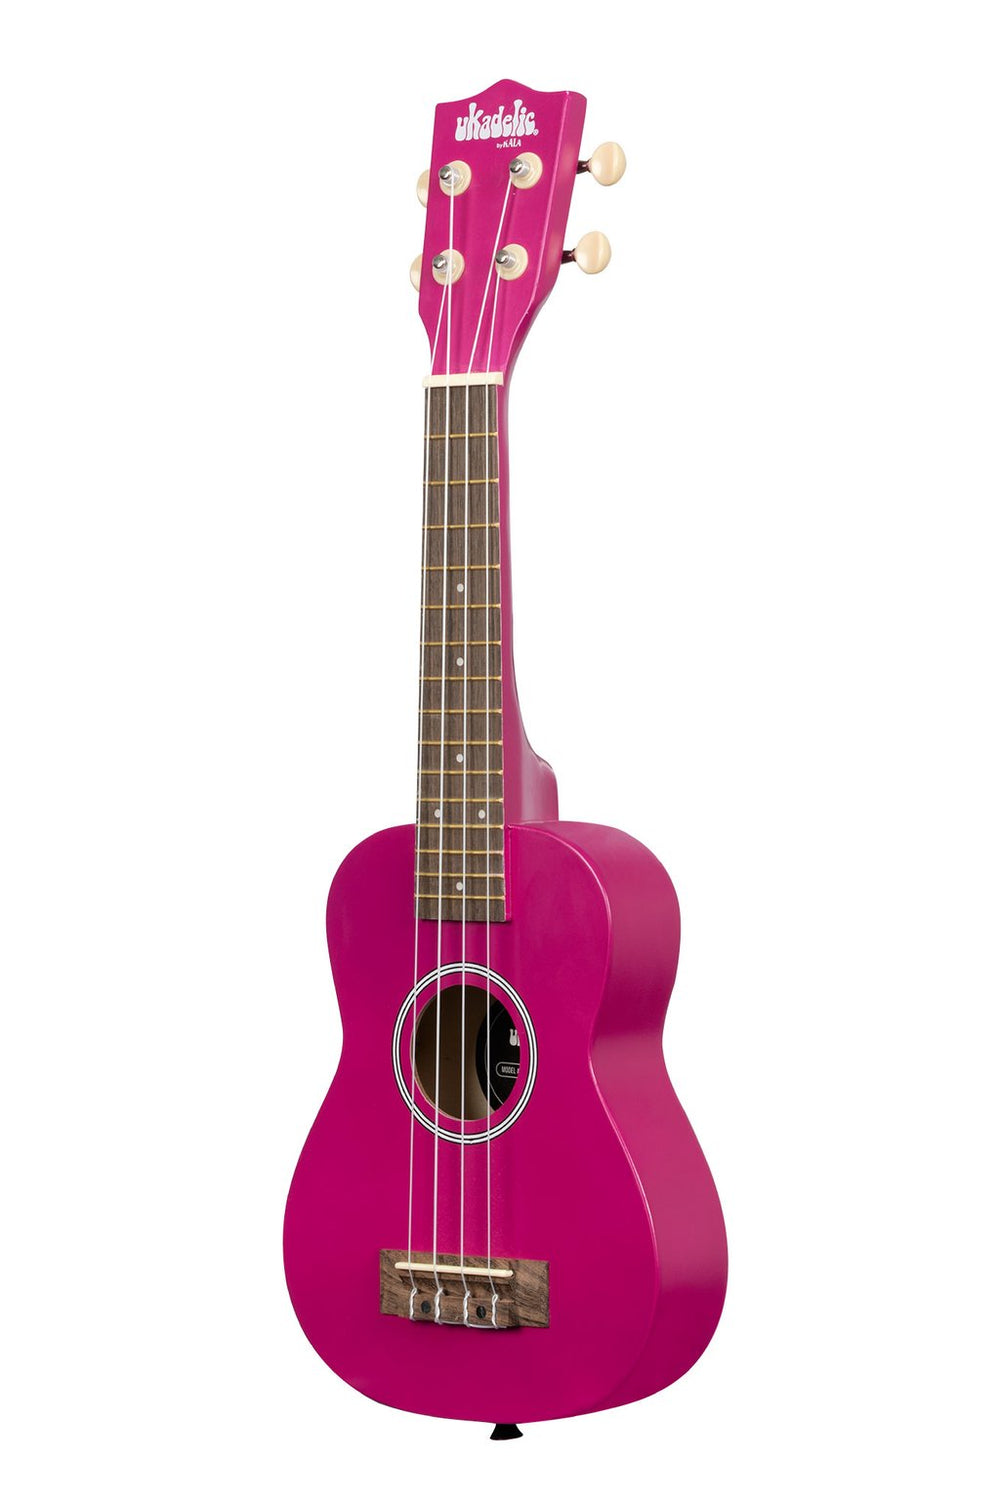 KALA Ukadelic Dragon Fruit Soprano Ukulele Pack with Tote Bag UK-DRAGONFRUIT